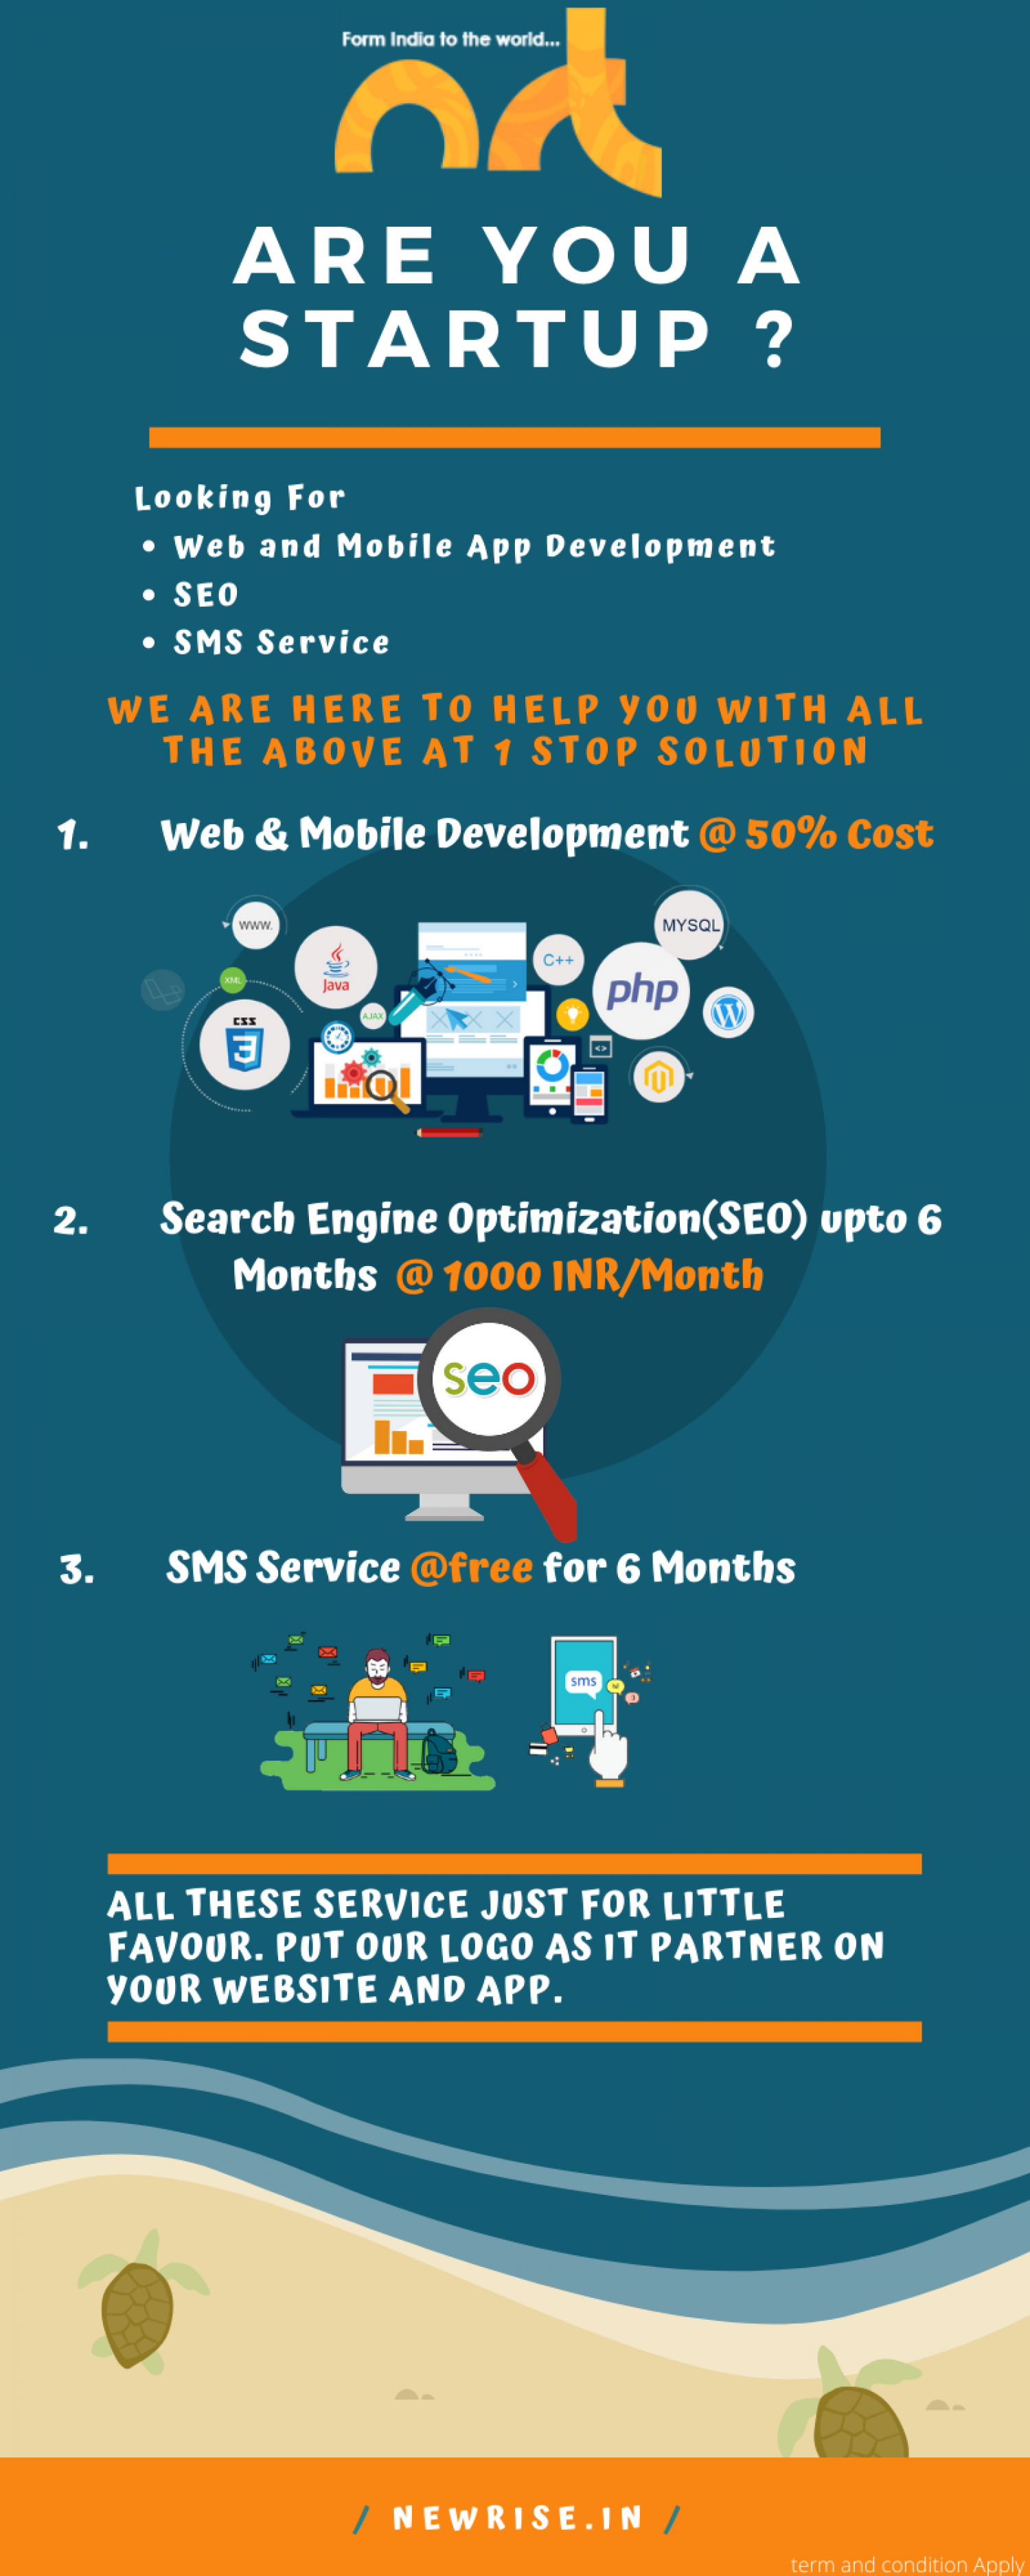 Are You Looking for Web & Mobile Development @ 50% Cost ? Infographic